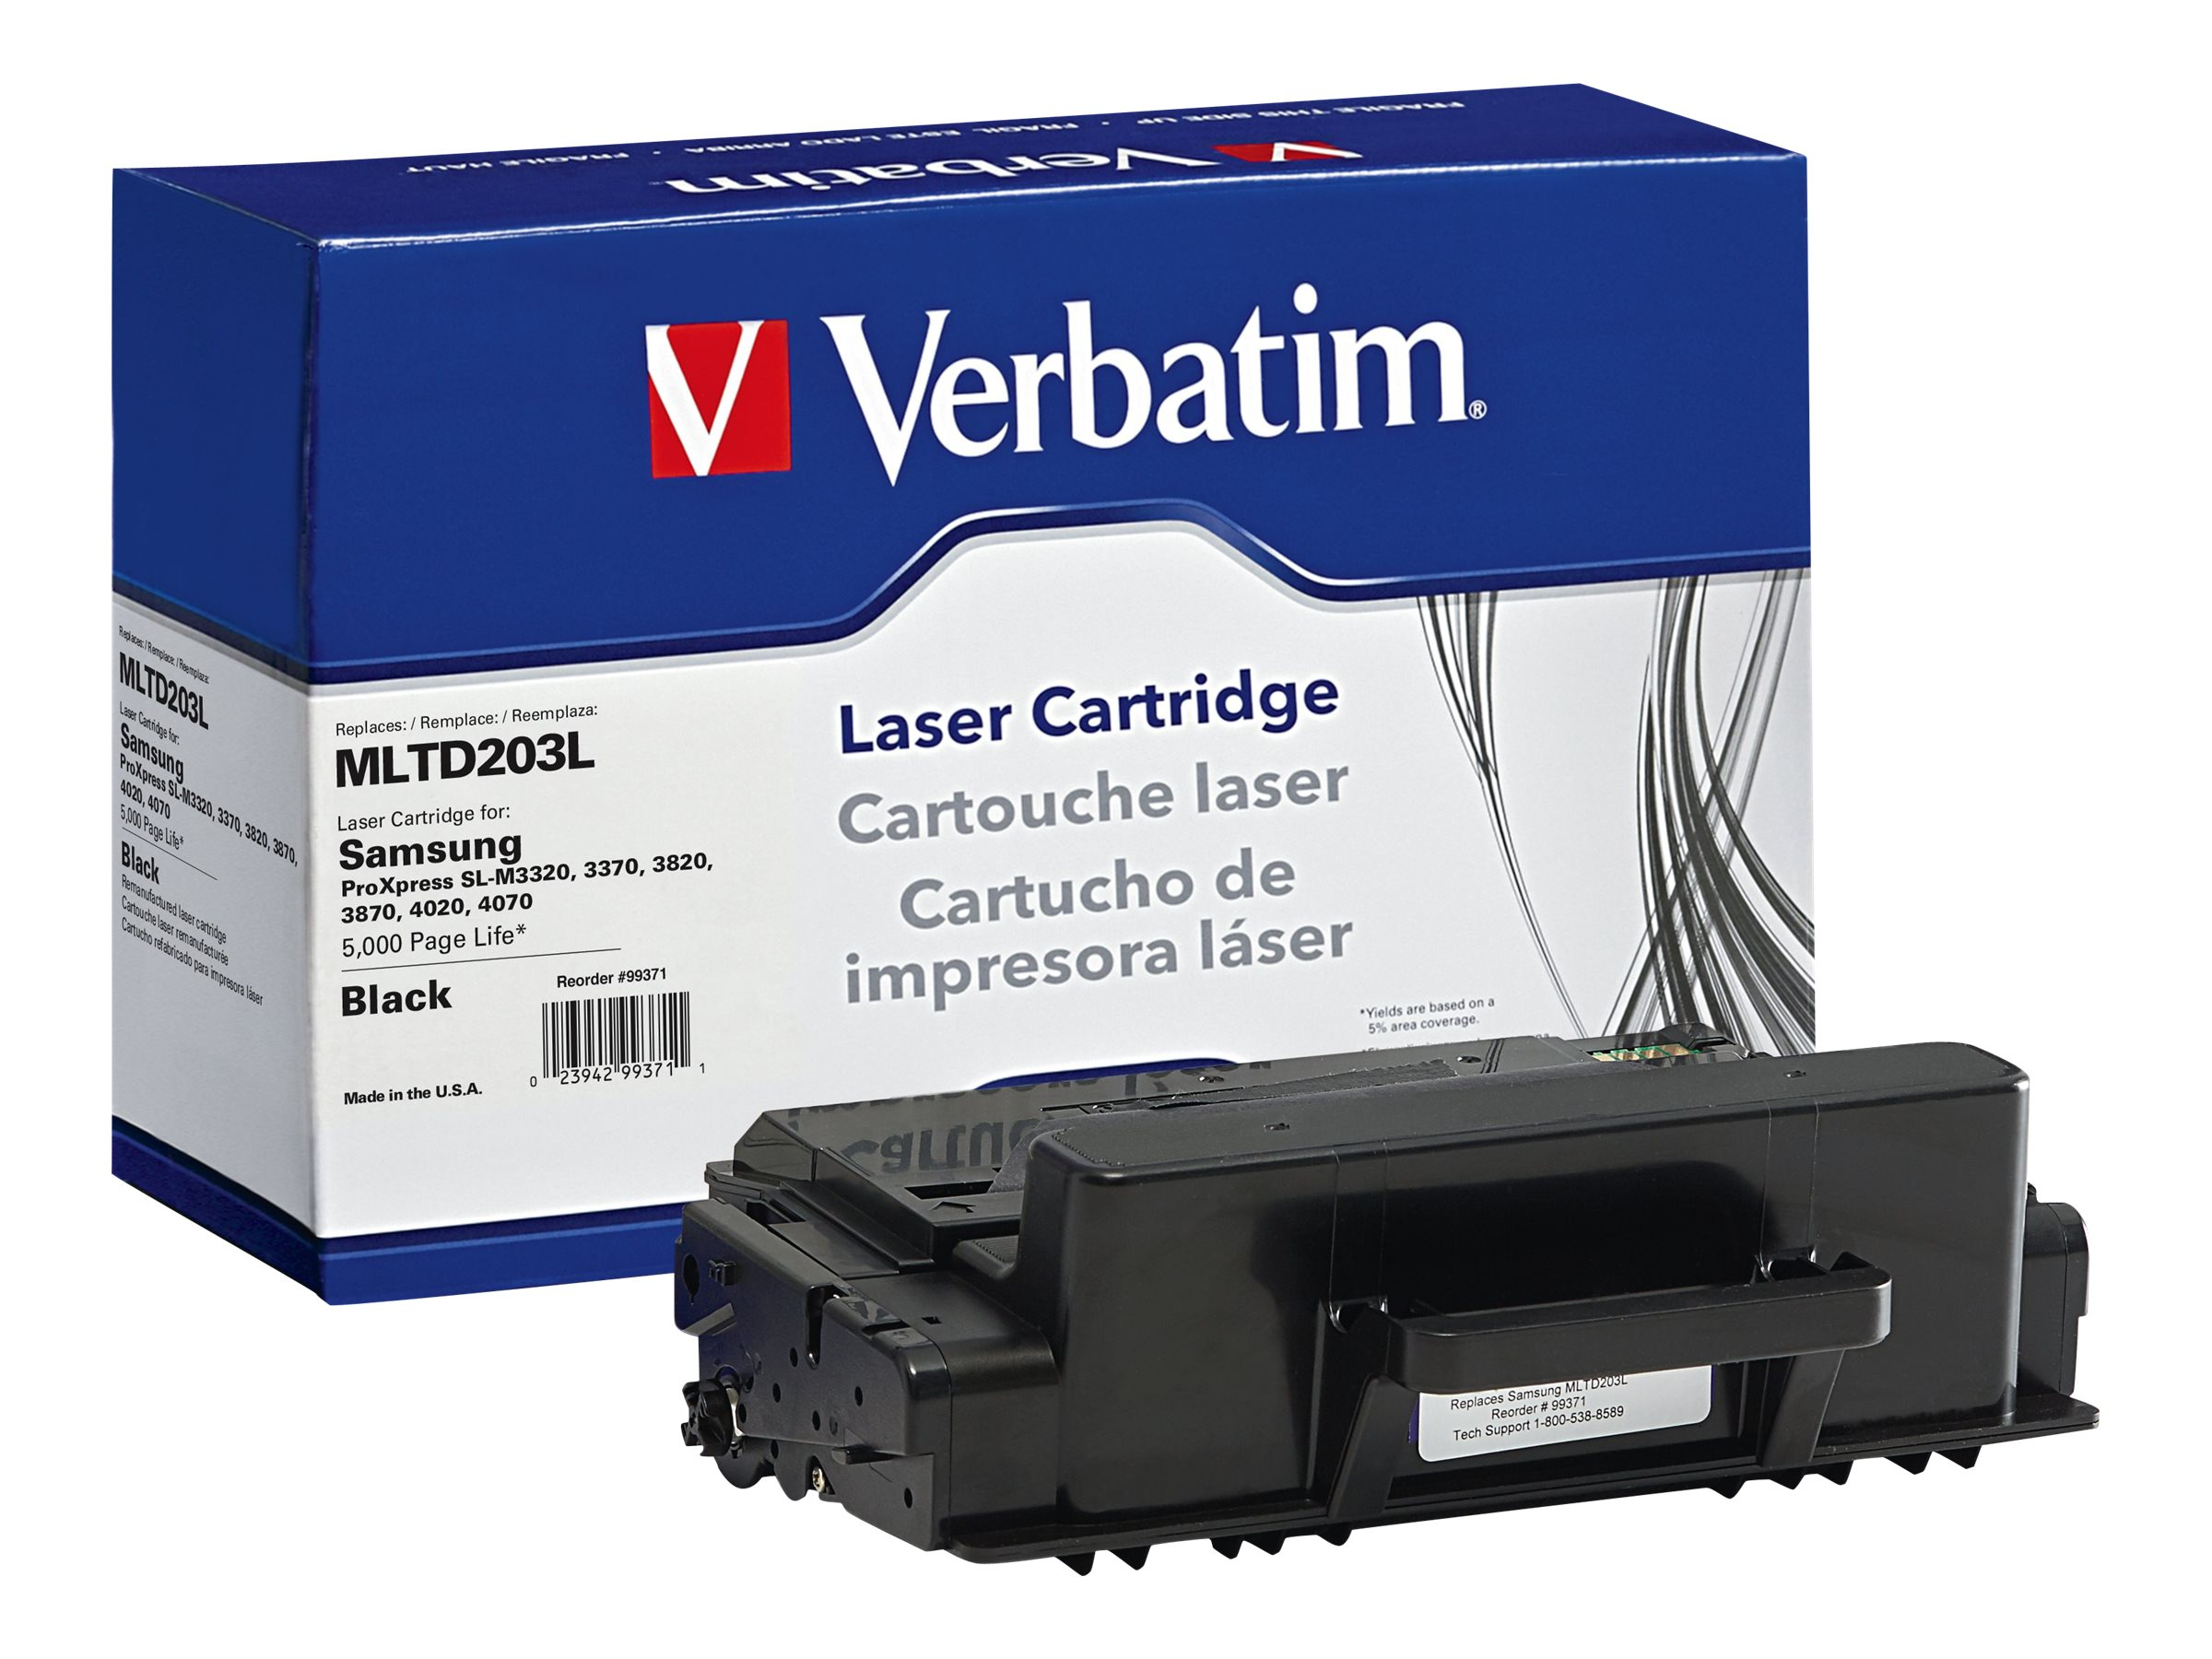 Verbatim MLTD203L Toner Cartridge for Samsung, 99371